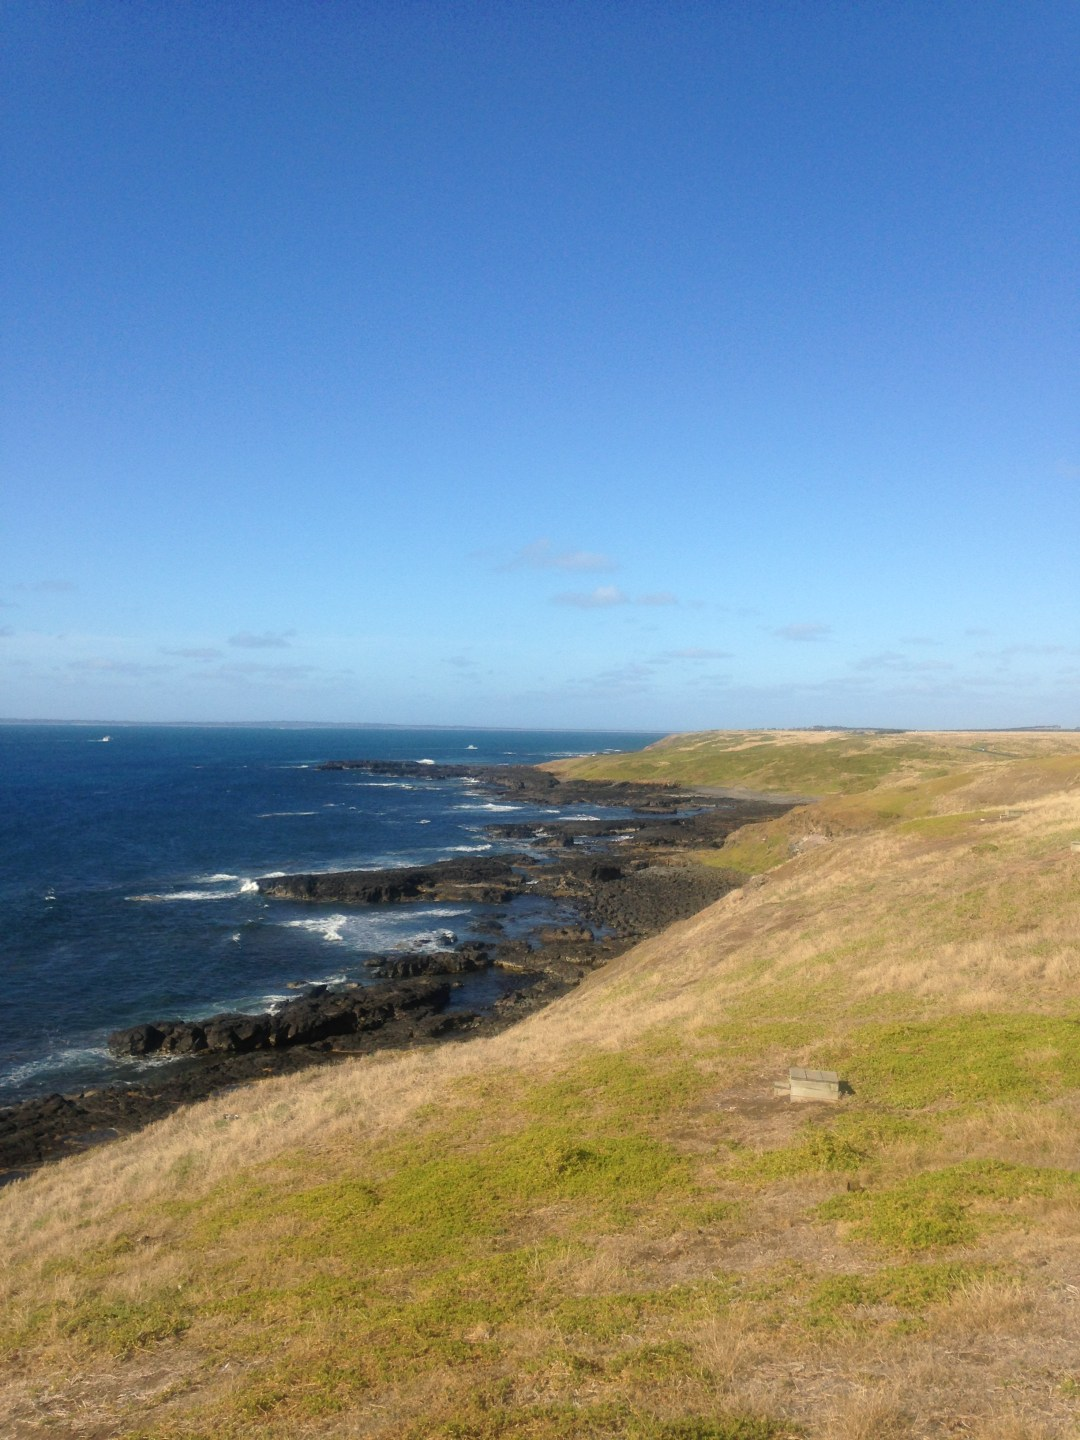 Summer views along the coastline of Phillip Island, Australia on a sunny day